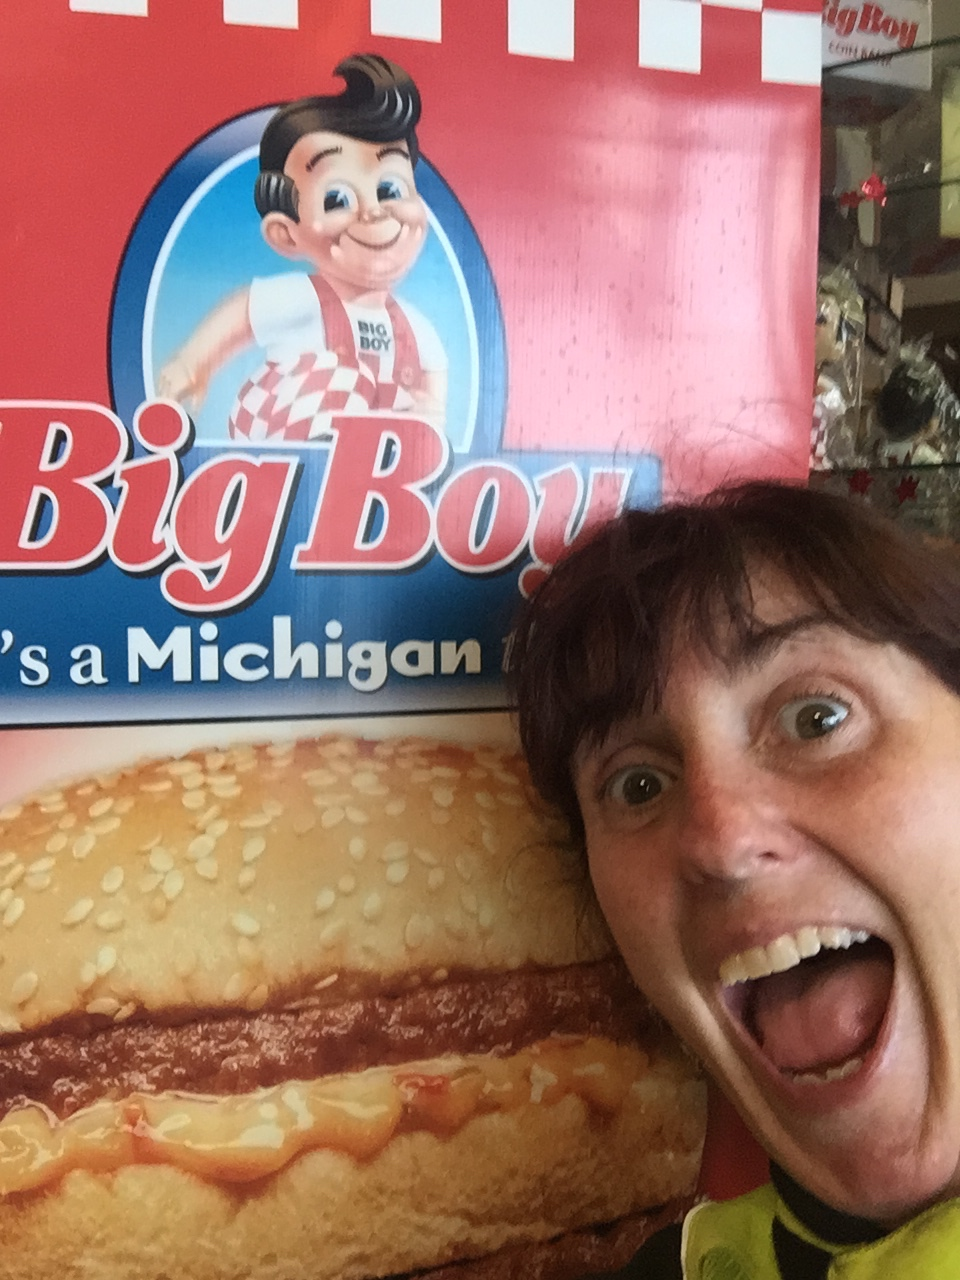 Yay! Big Boy is alive in the midwest!